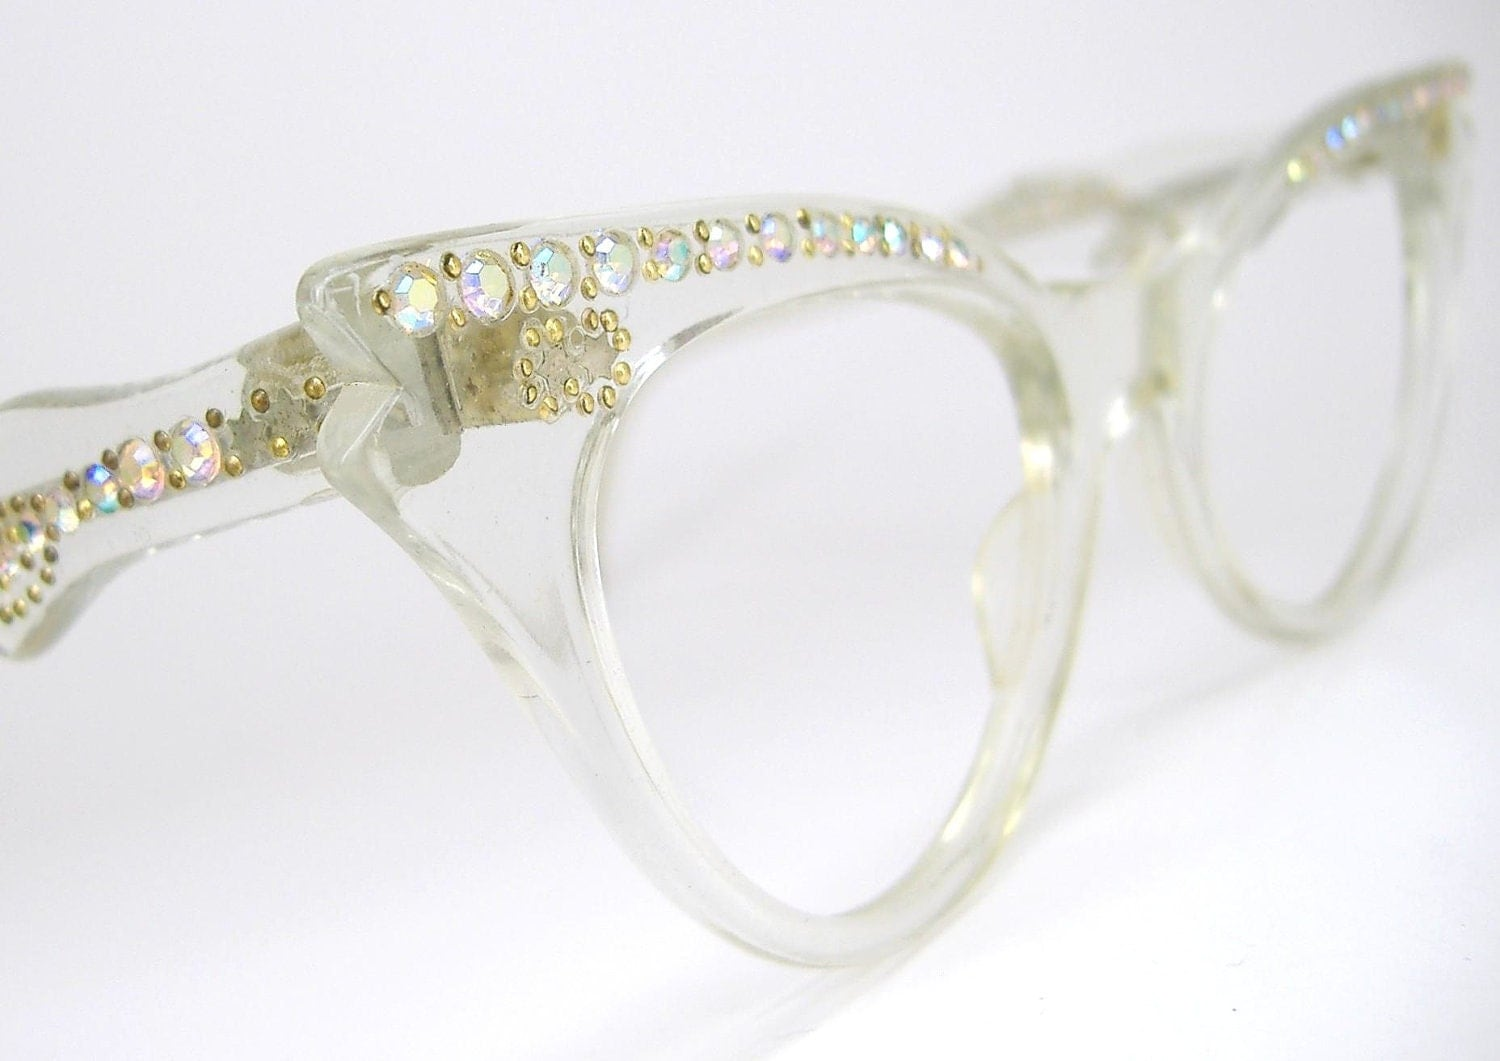 Glasses Frames With Bling : Vintage 1950s French Rhinestone Eyeglasses Frames